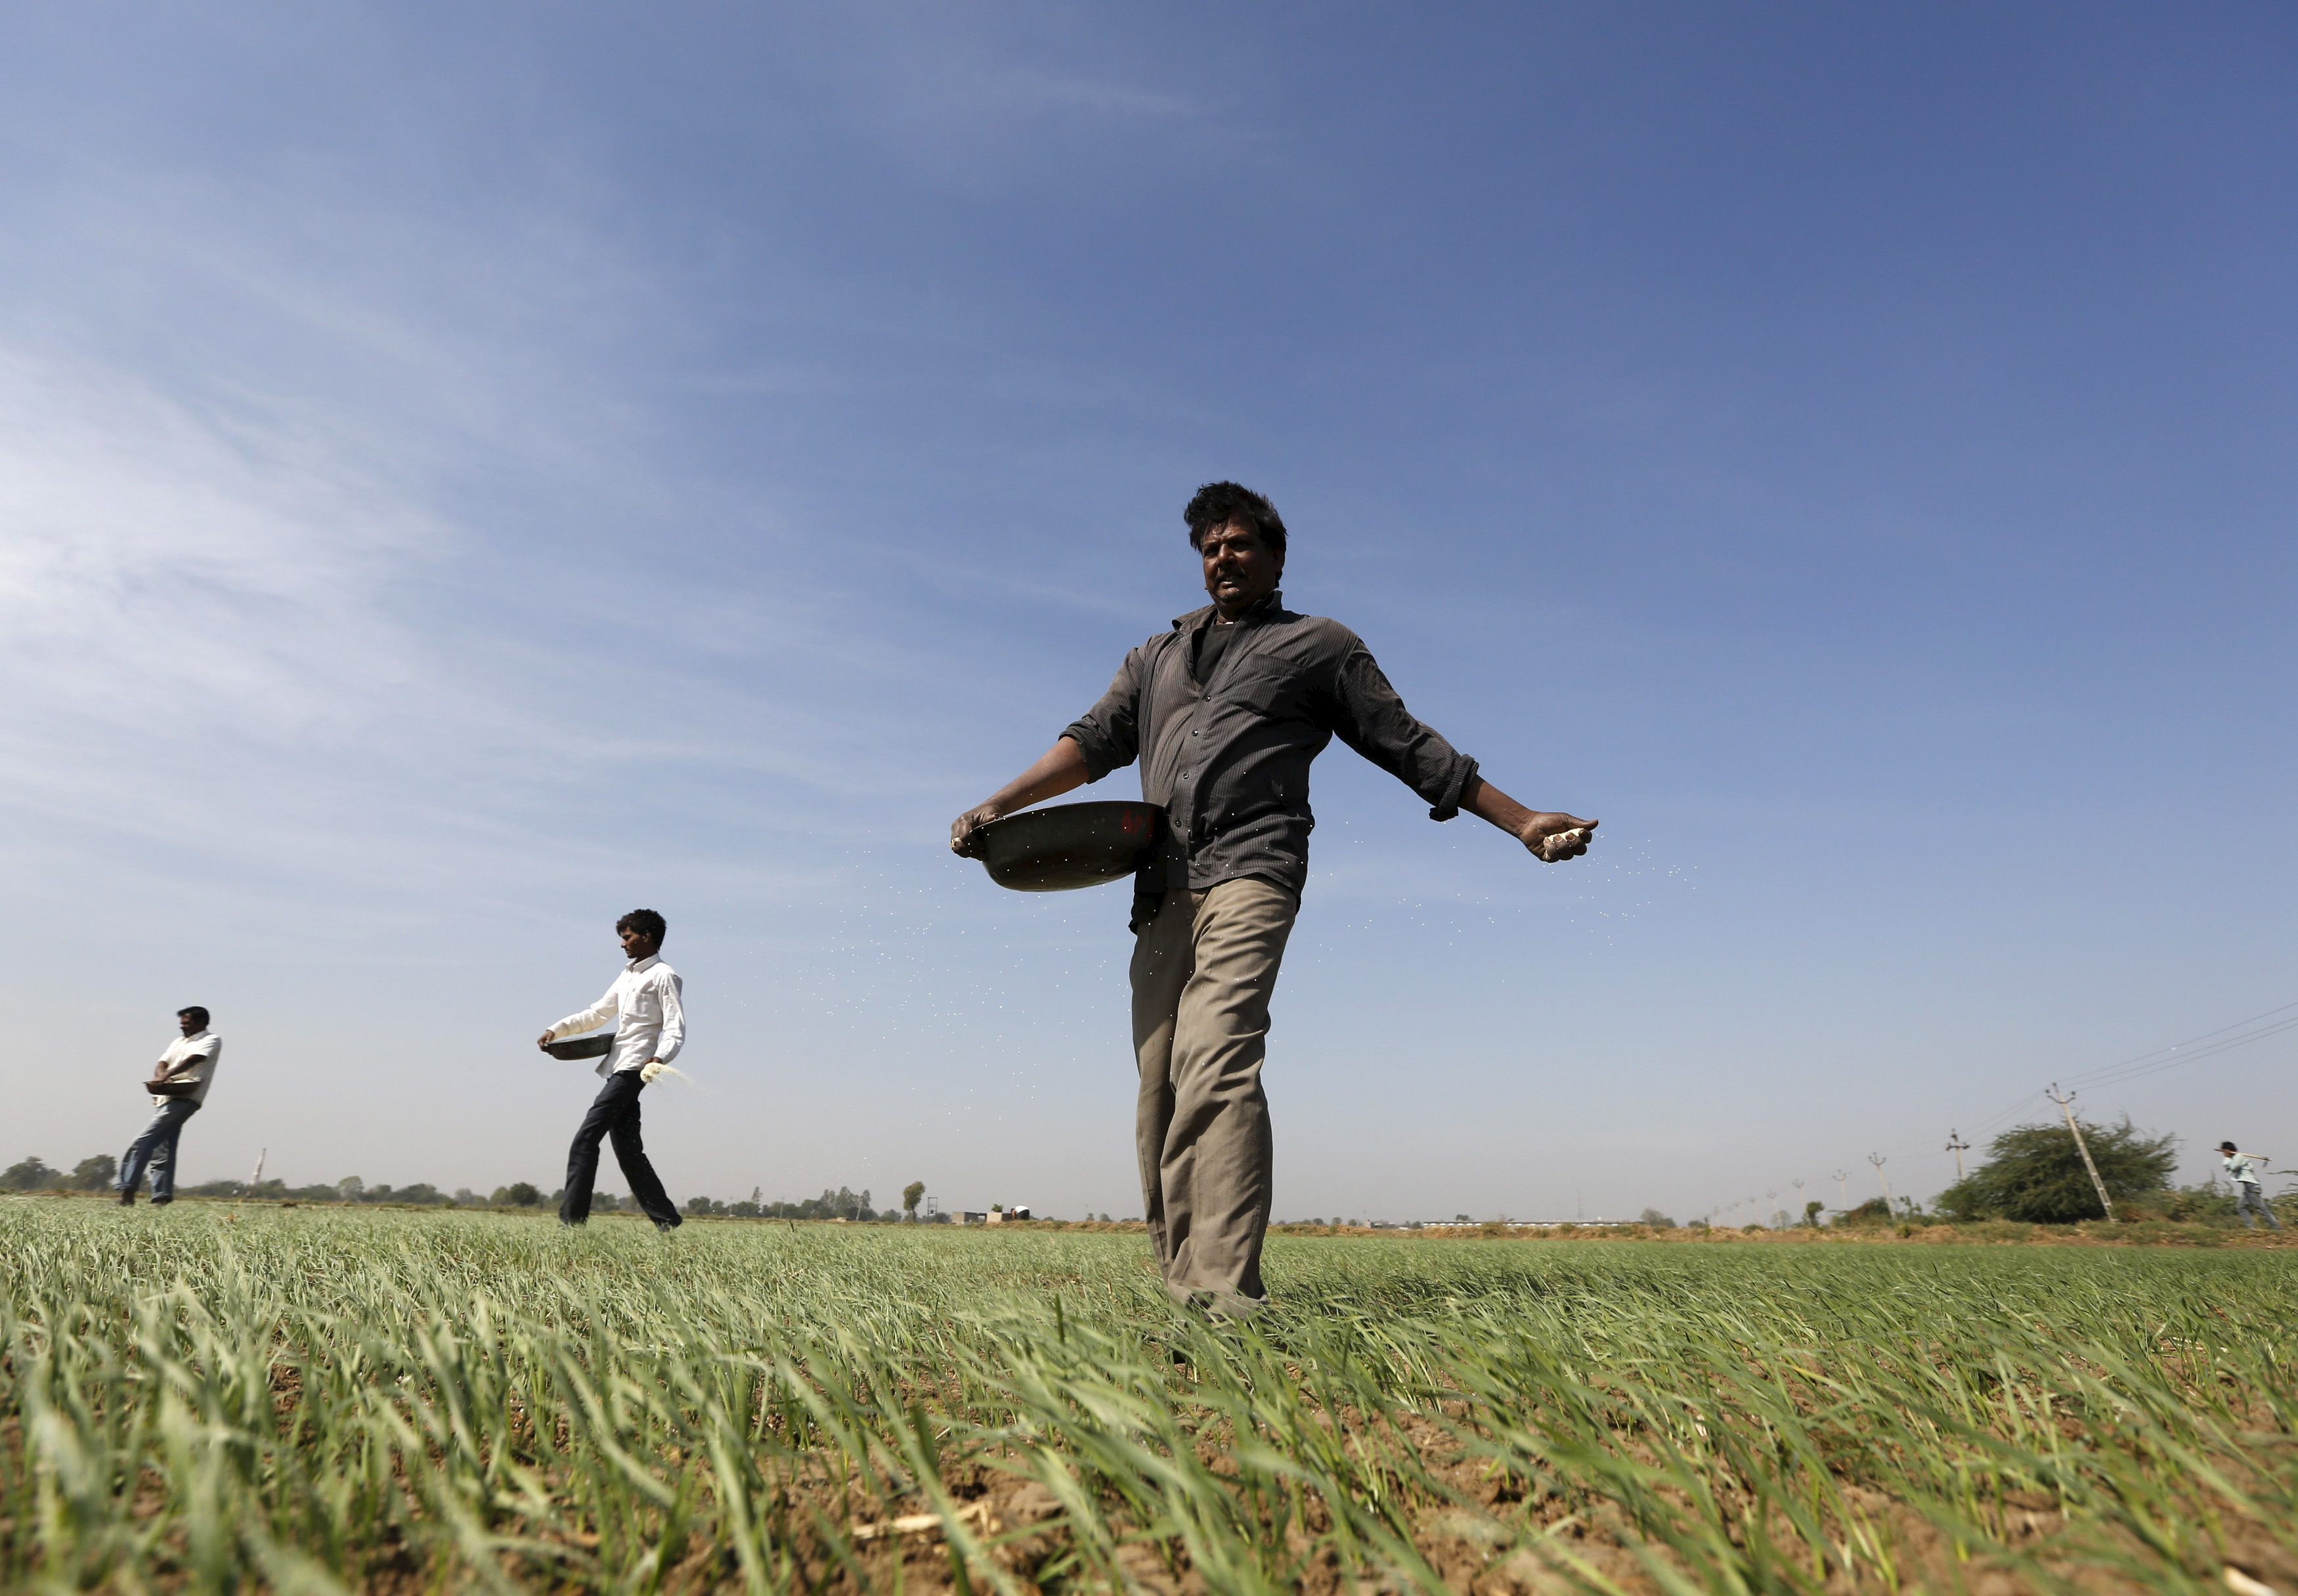 Farmers sprinkle fertilizer on a wheat field on the outskirts of Ahmedabad, India, on Dec. 15, 2015